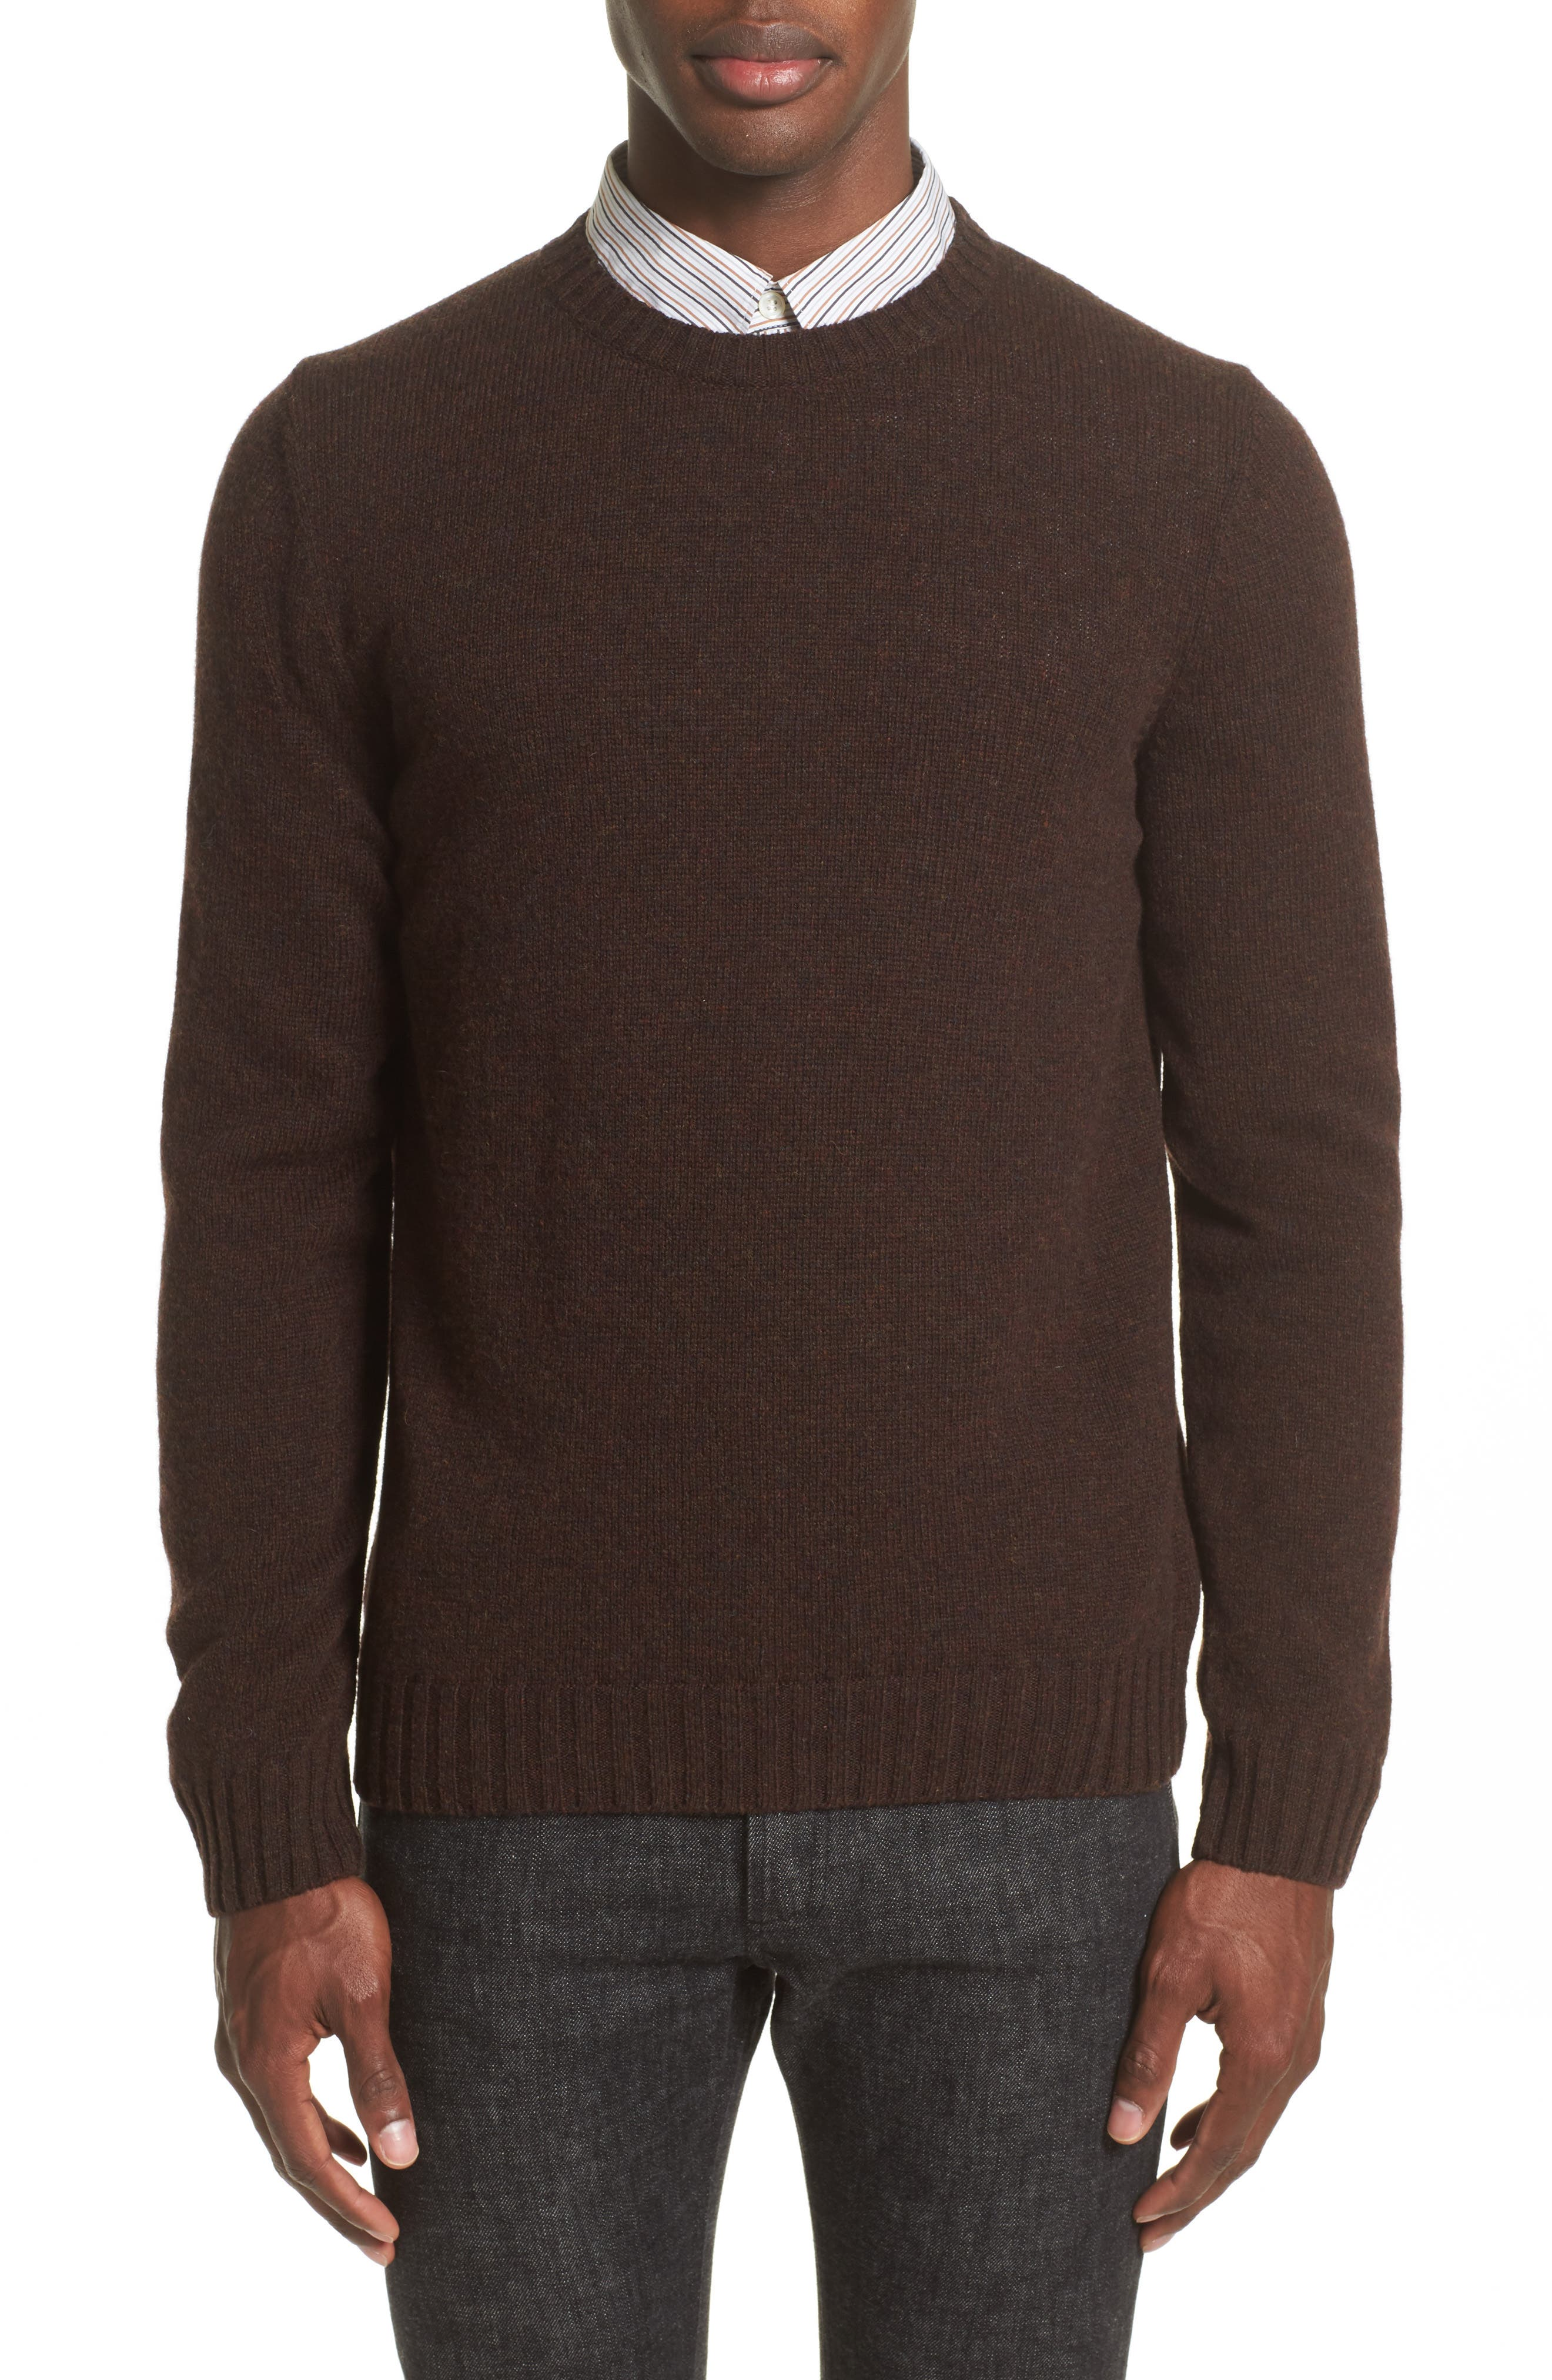 A.P.C. Pull 90 Crewneck Sweater